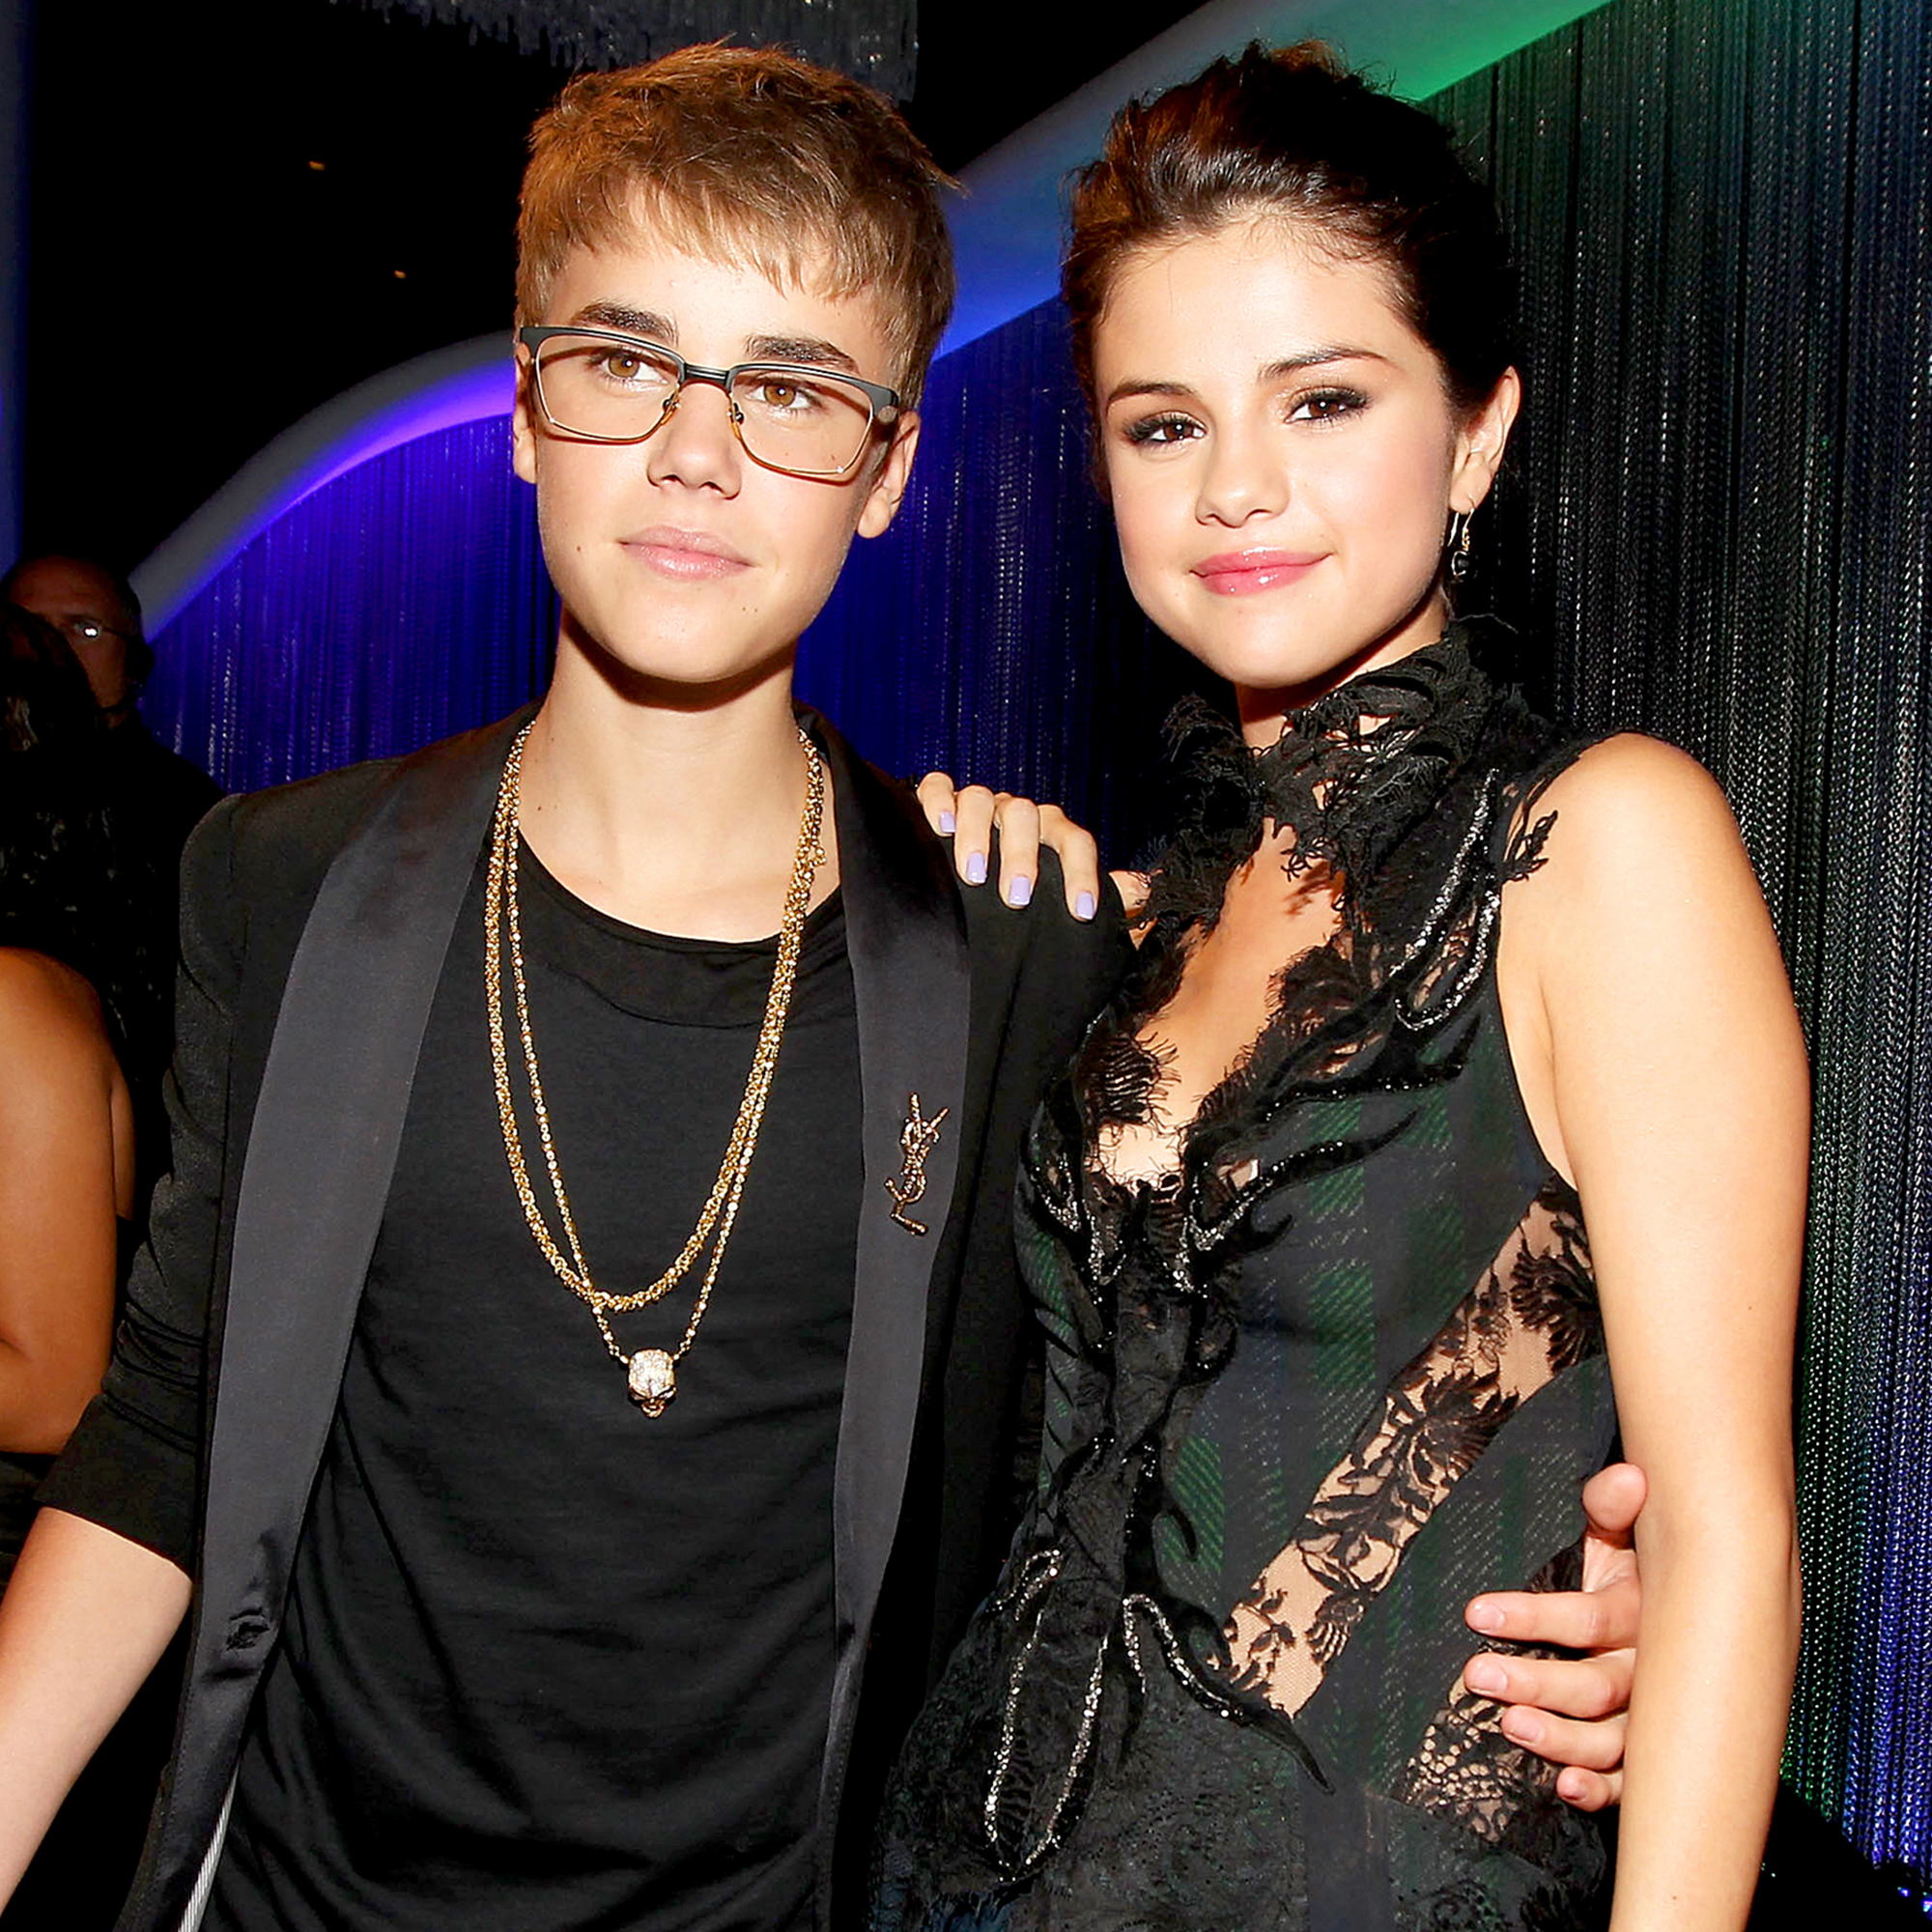 Selena Gomez mom is not happy about Justin Bieber